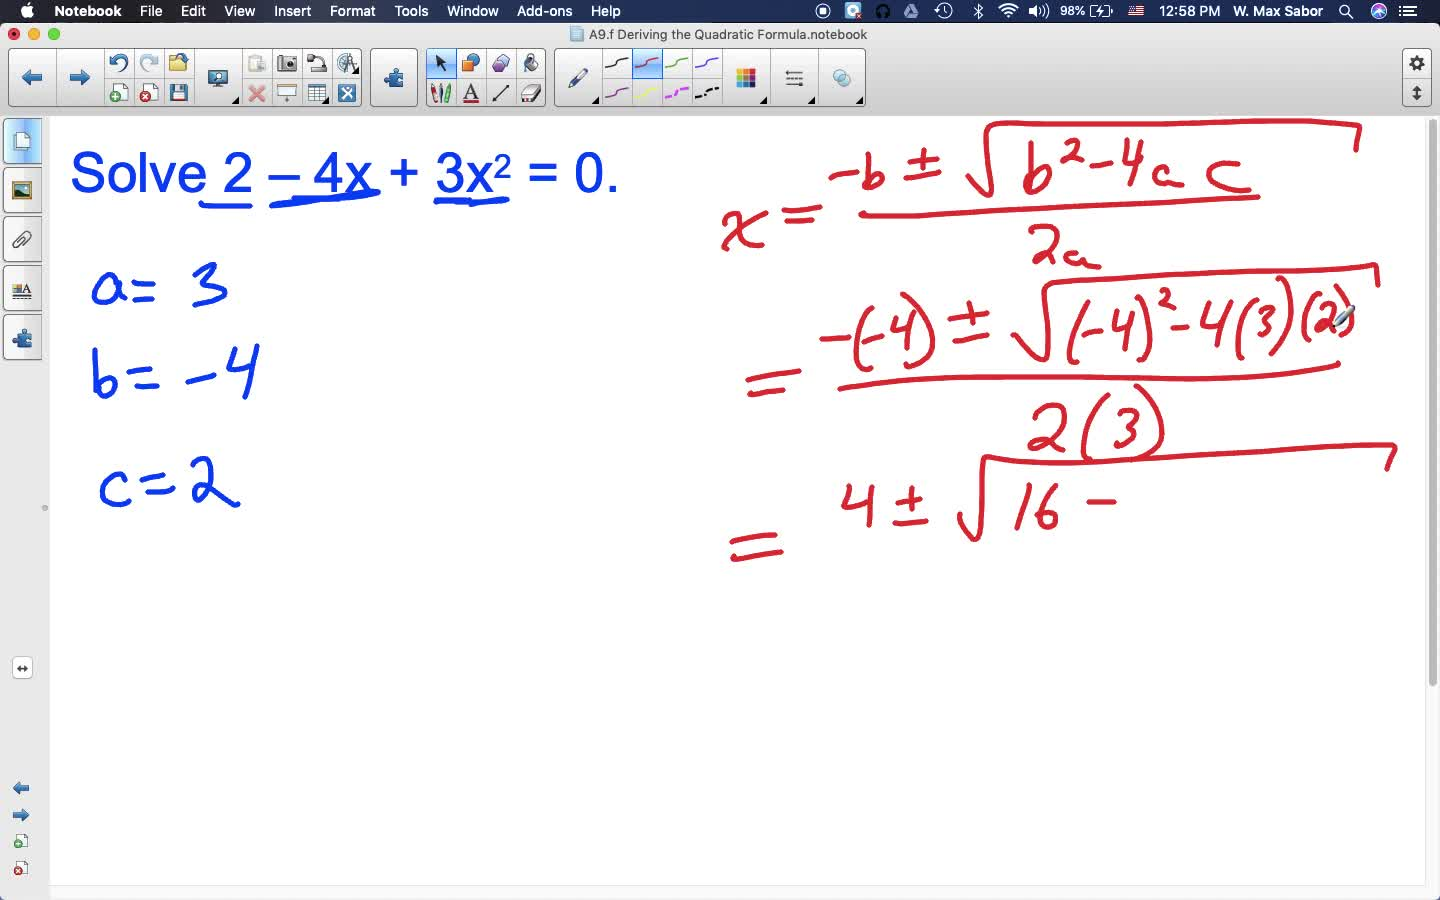 A9.f Deriving the Quadratic Formula